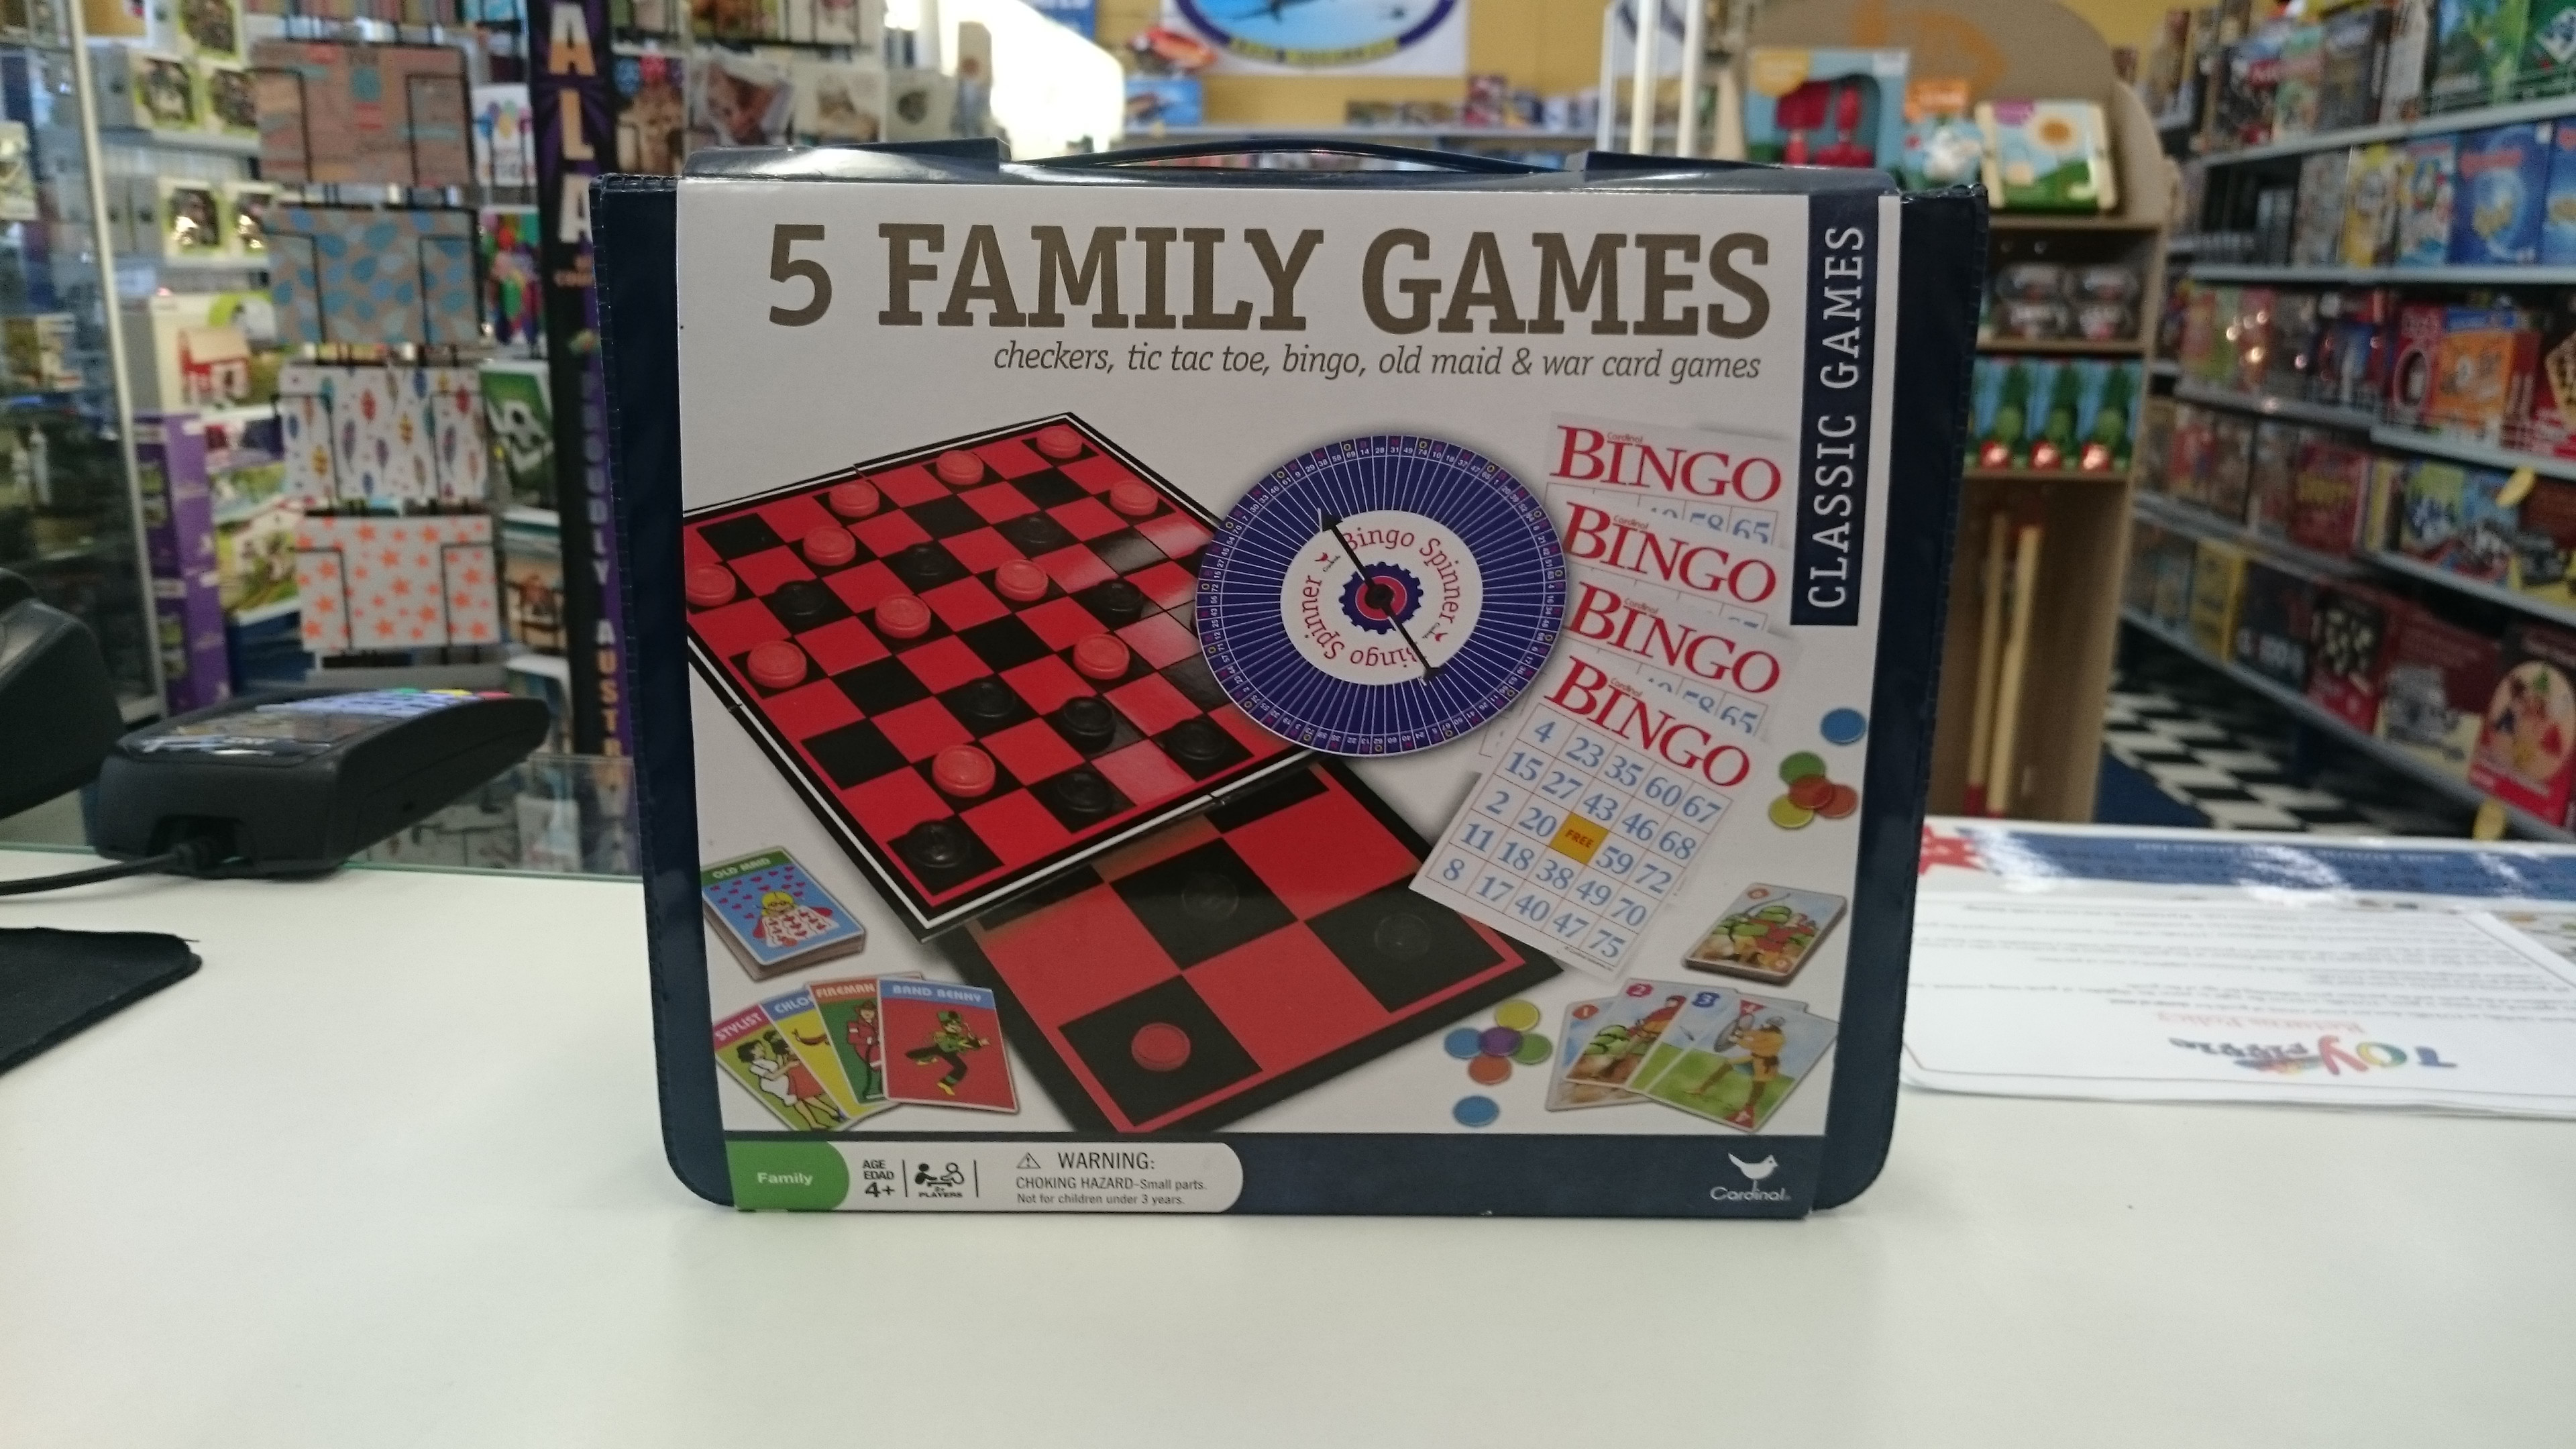 5 Family Games